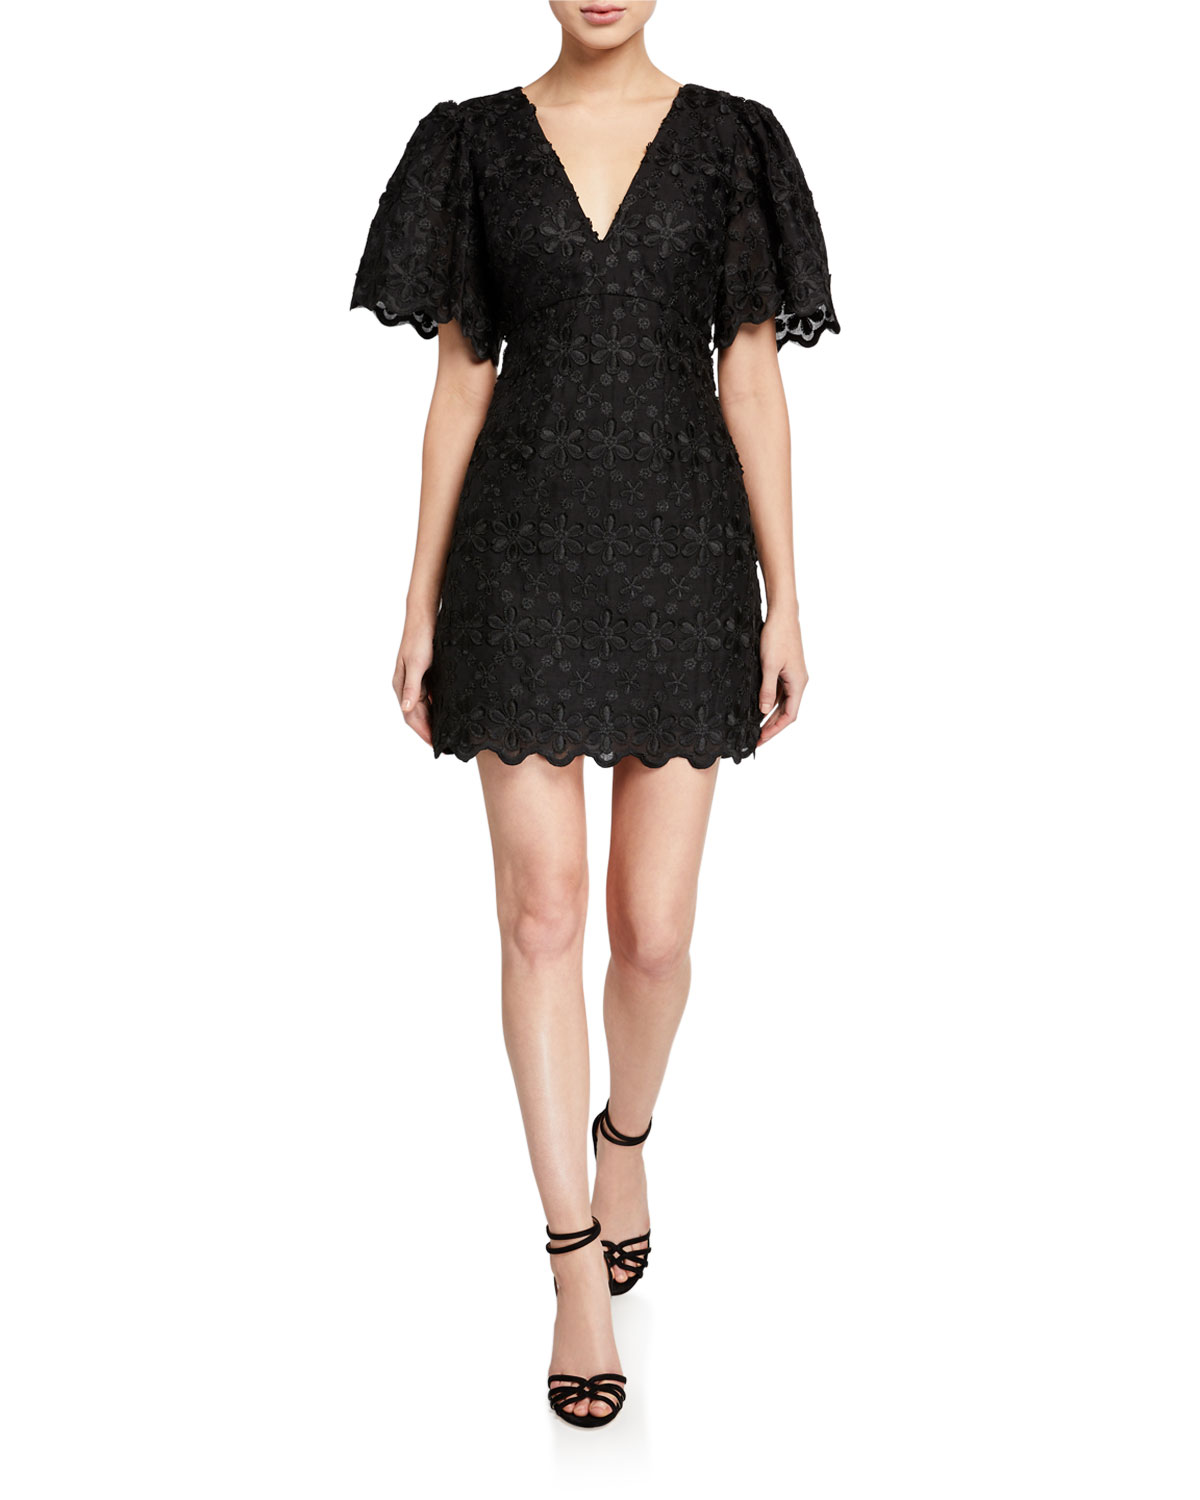 La Maison Talulah Limousine Mini Dress